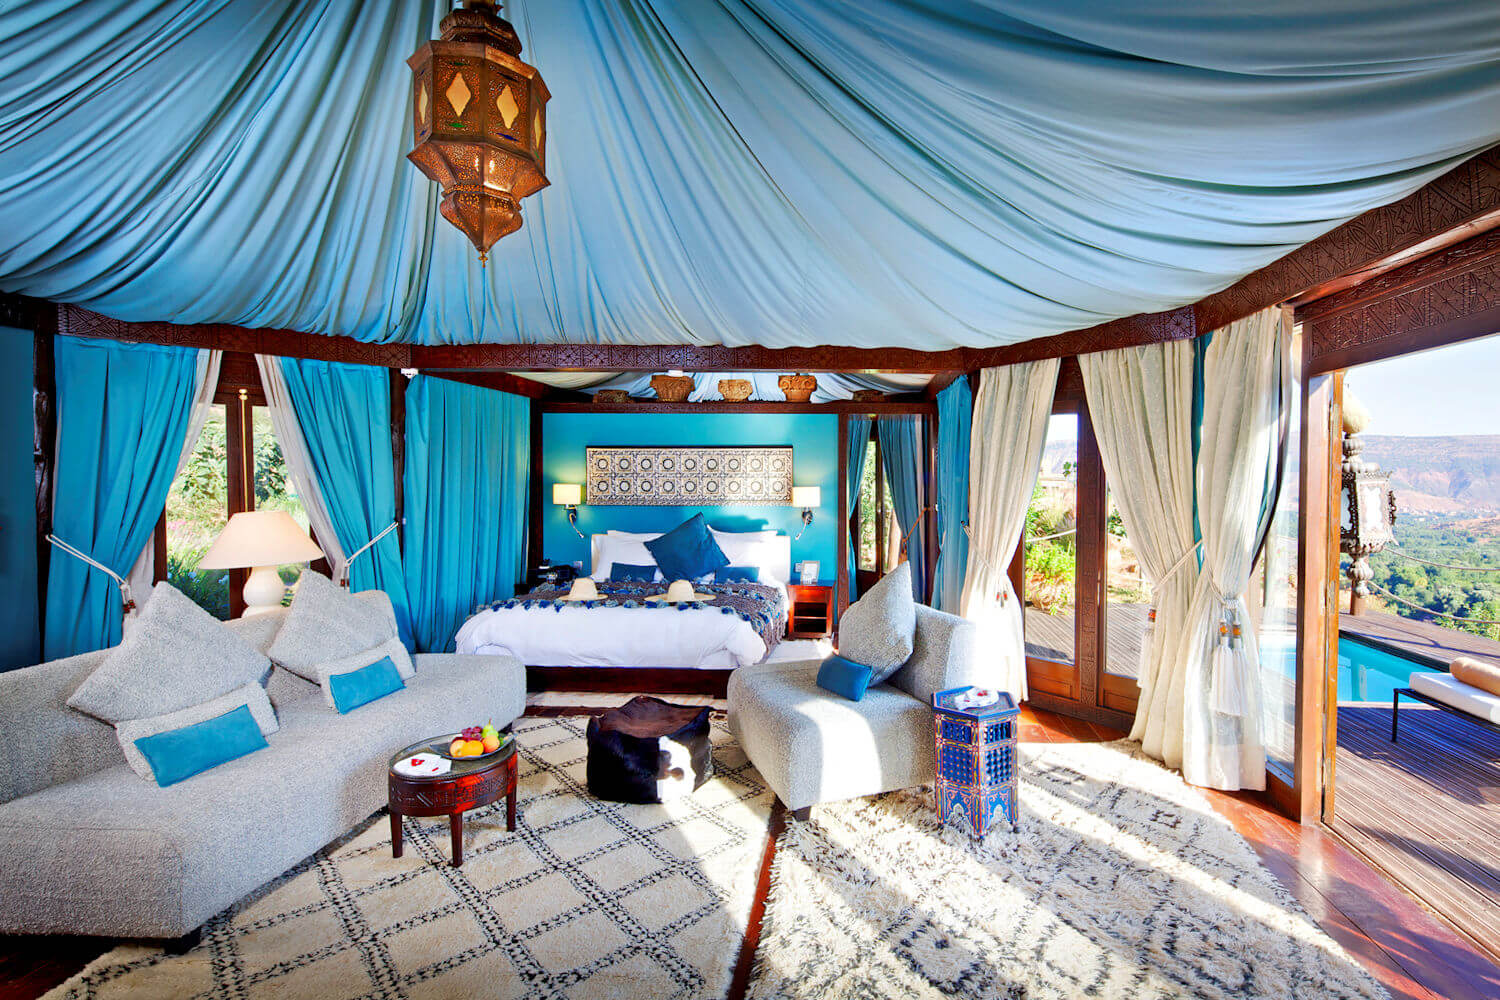 berber tented suite at Kasbah Tamadot